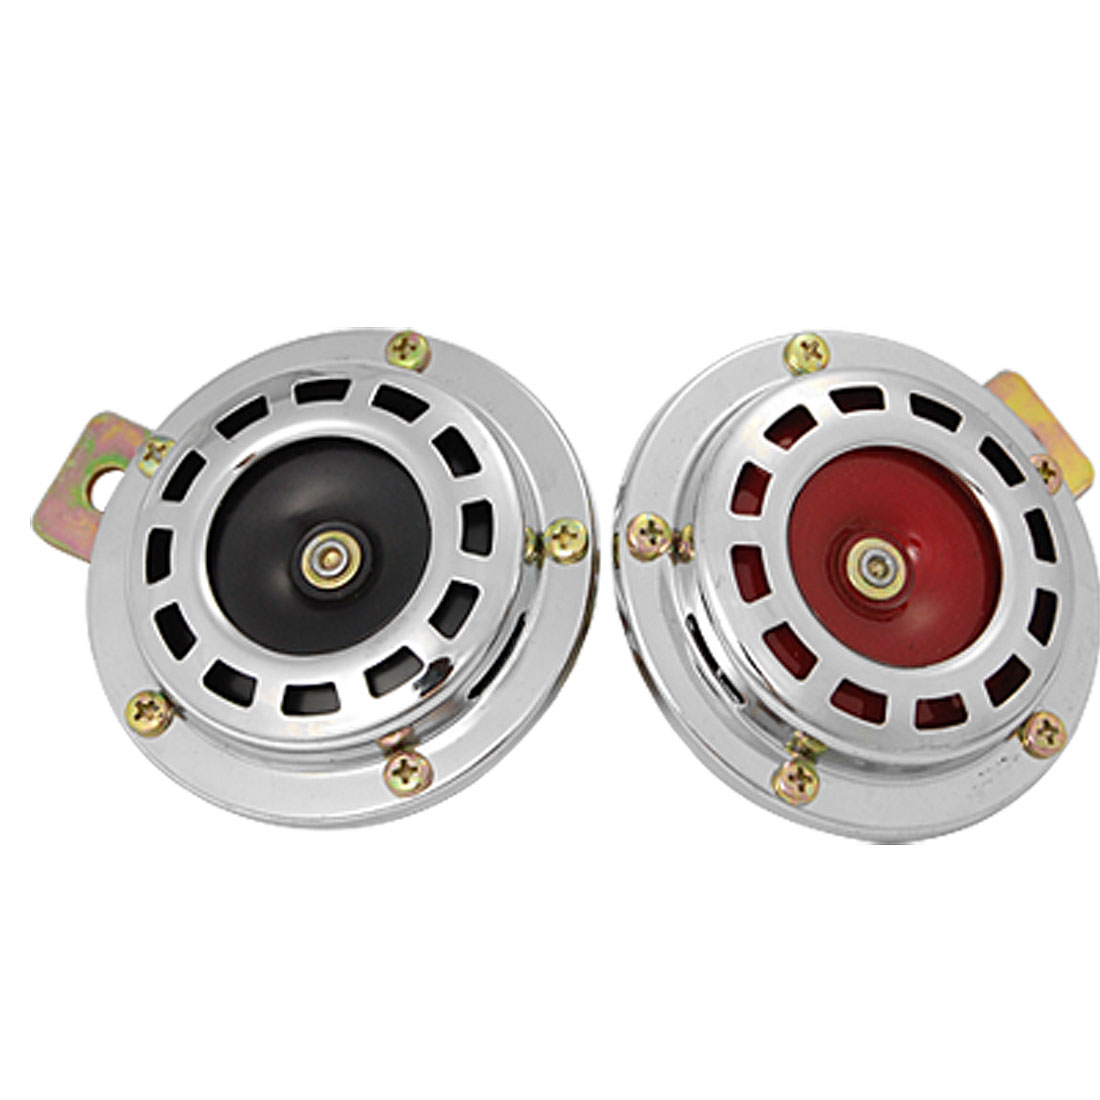 2 PCS Car Auto Vehicle DC 12V Loud Horn Speaker Silver Tone